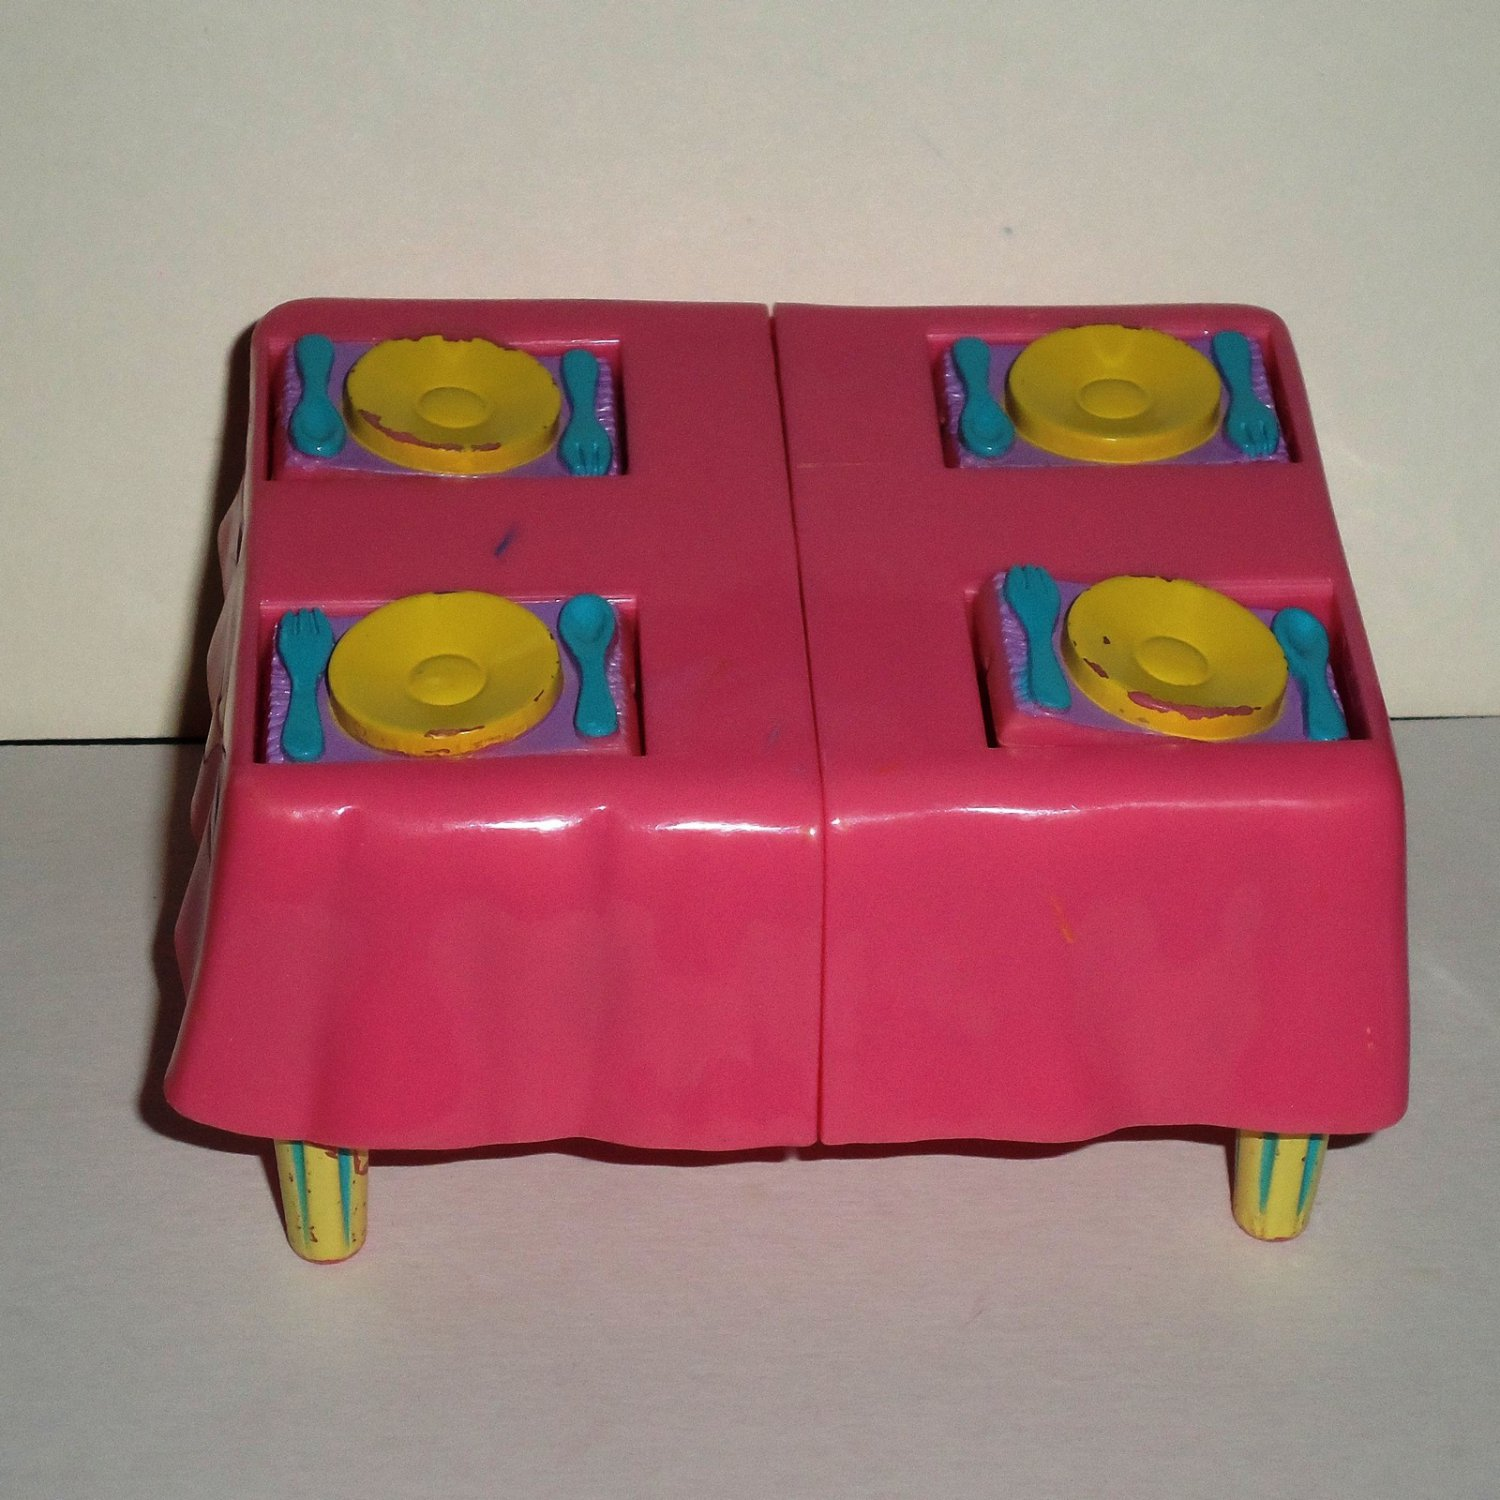 Fisher-Price Dora the Explorer Kitchen Table from C6914 Set Mattel Loose Used